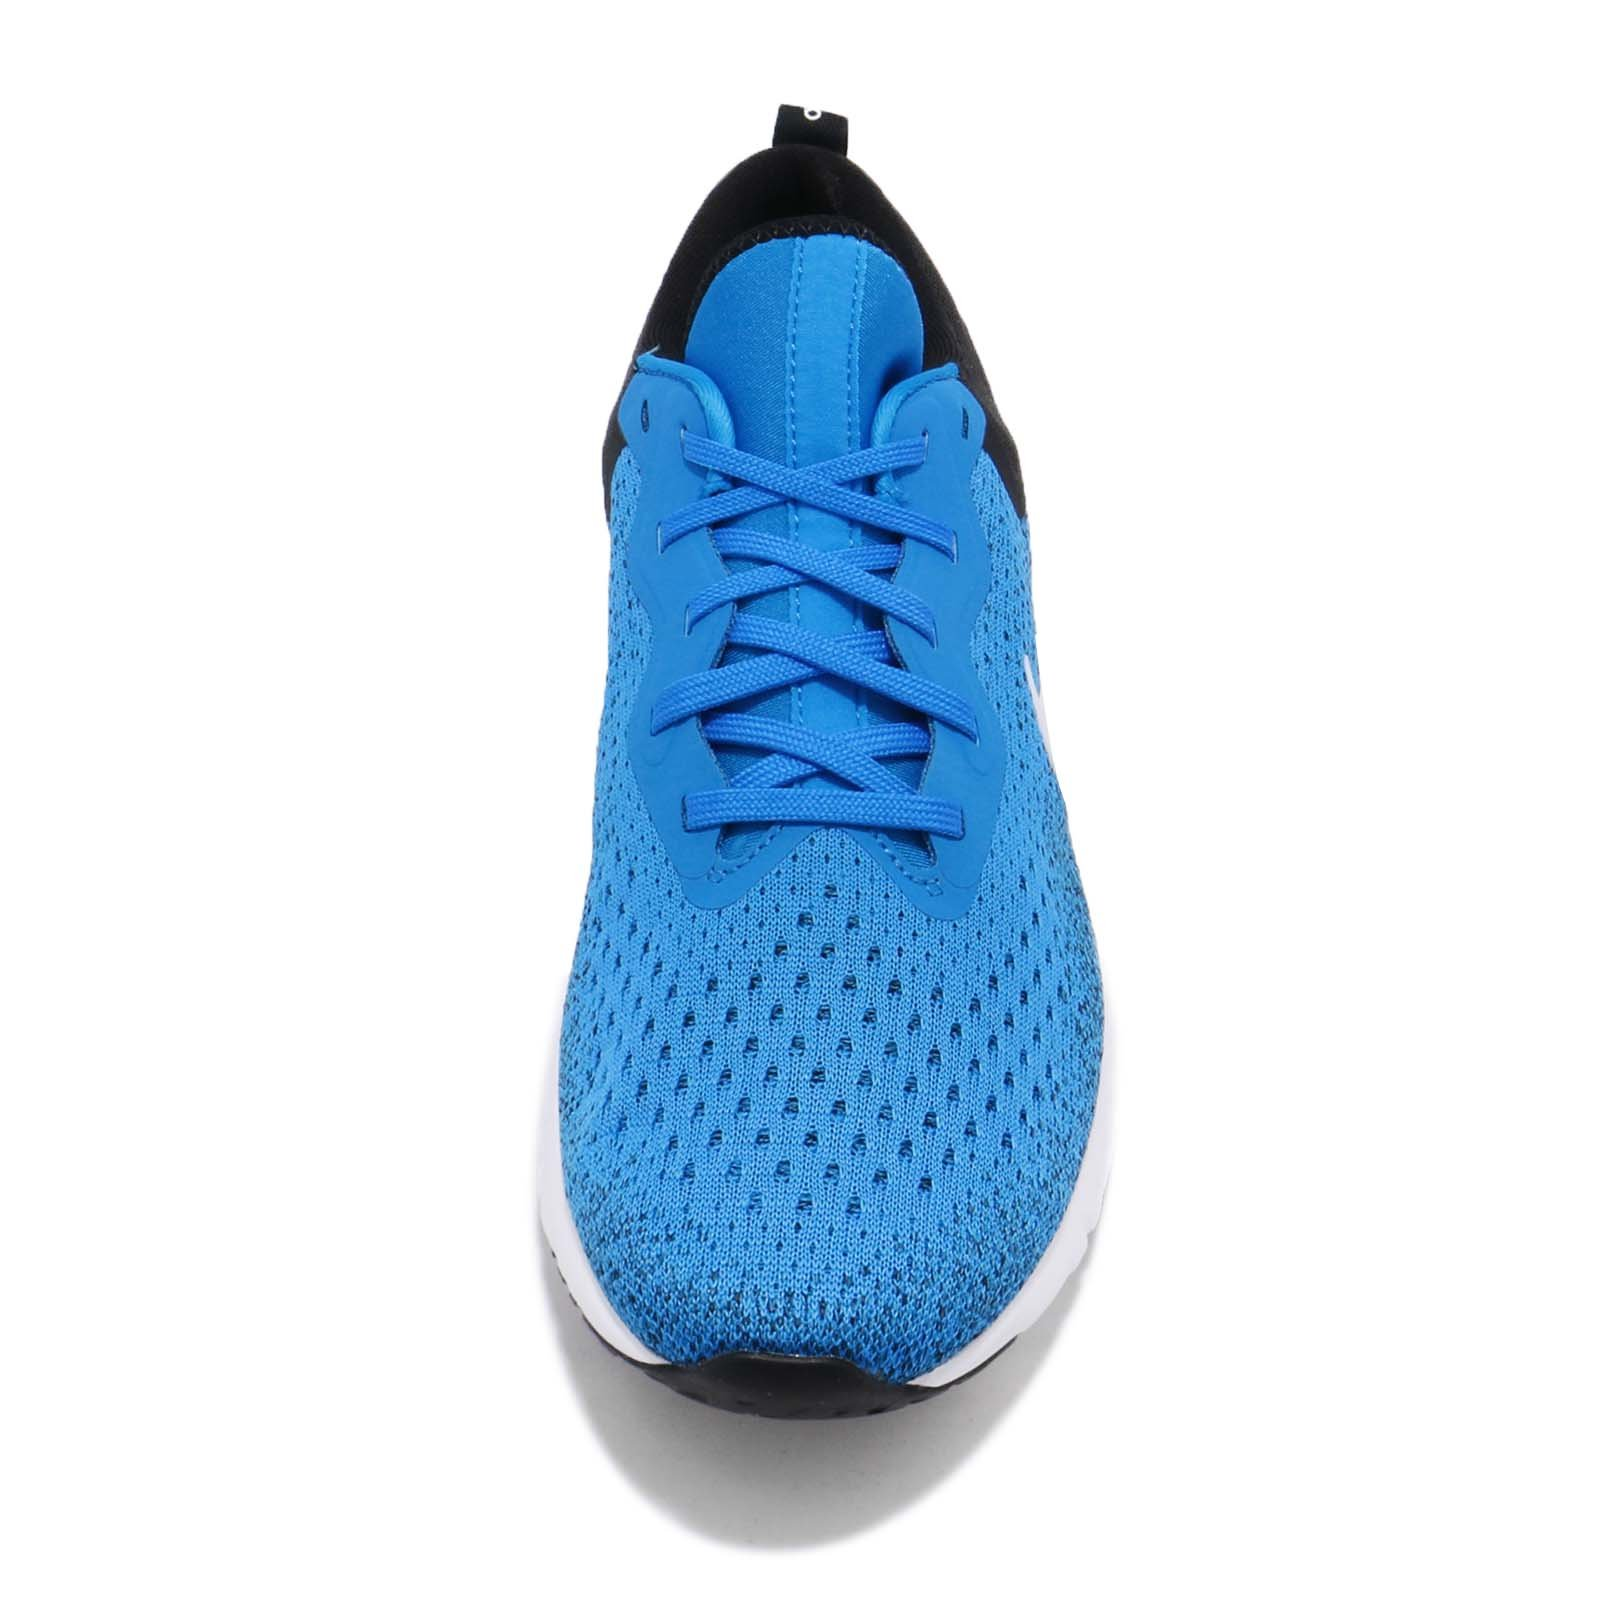 Nike Men's Odyssey React Running Shoes (7.5, Photo Blue/Black) by Nike (Image #5)